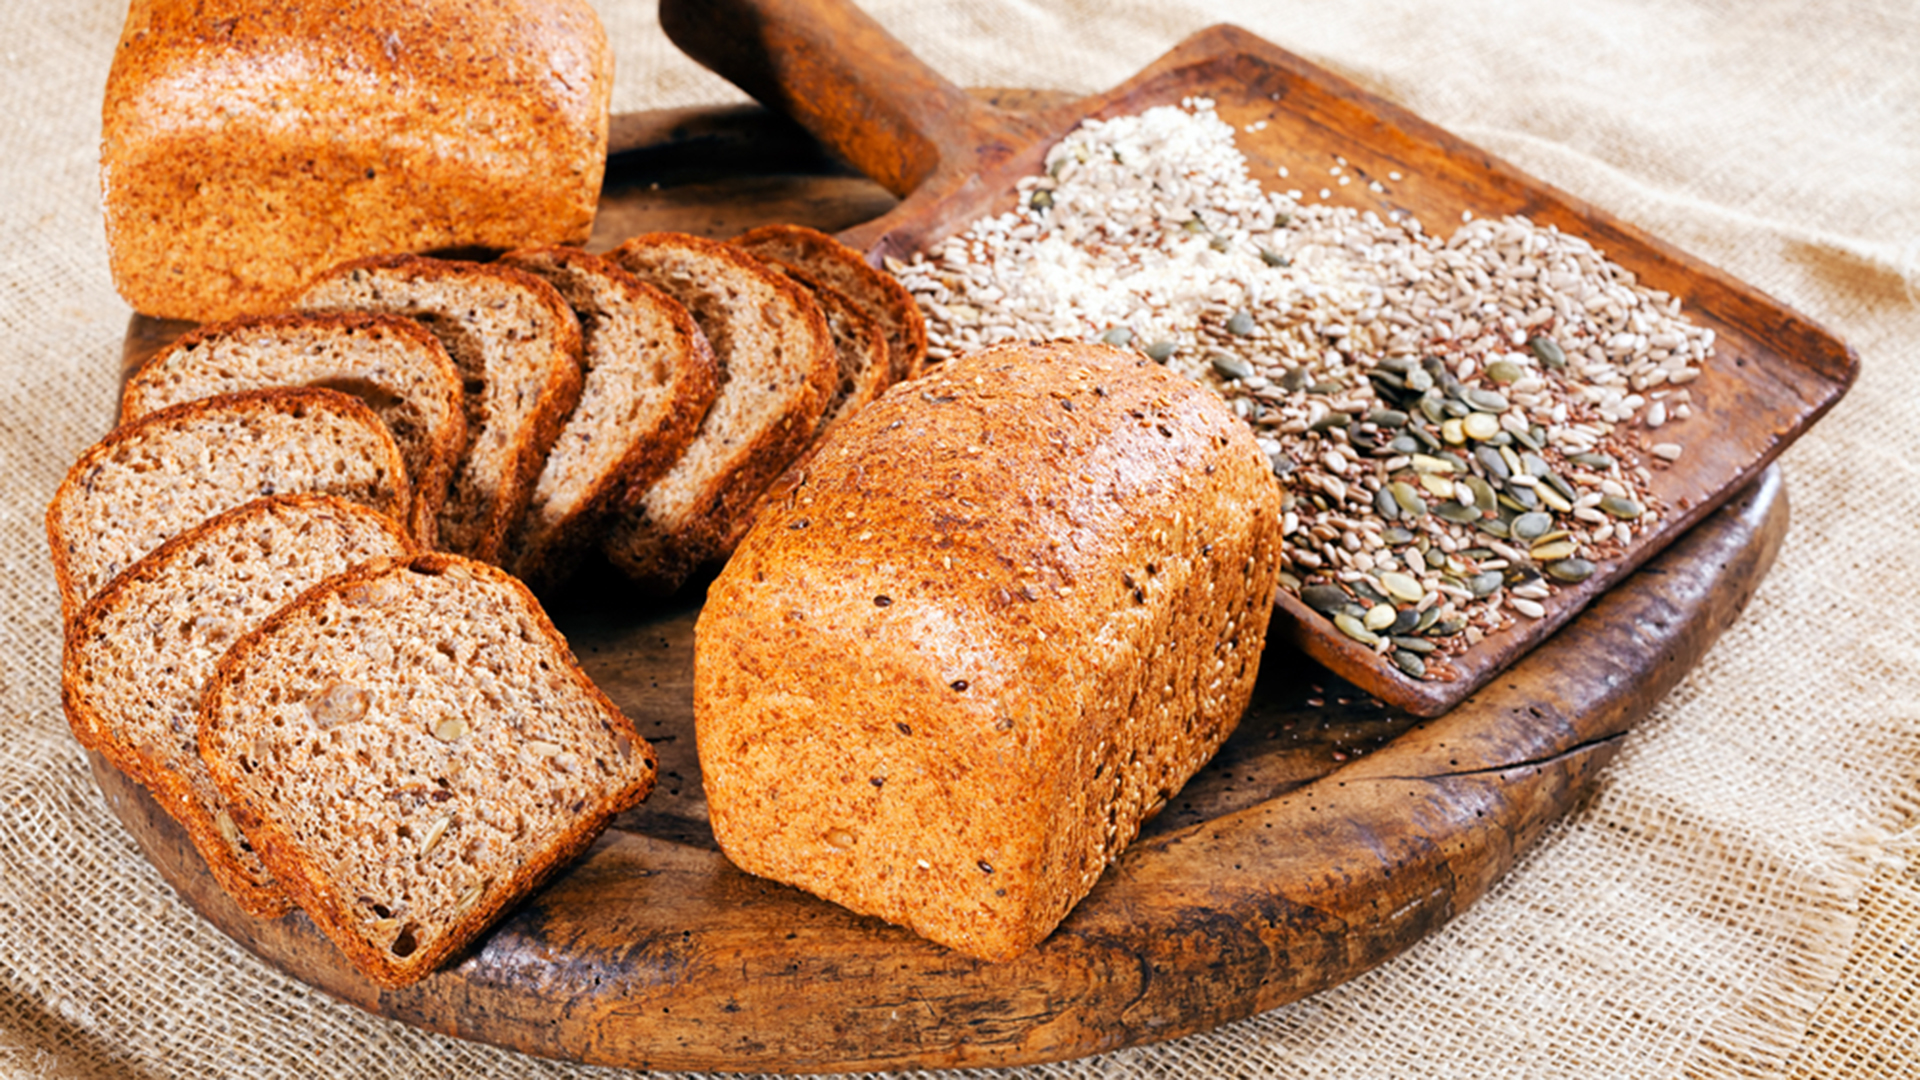 Whole Grains Help People Absorb Fewer Calories Tufts